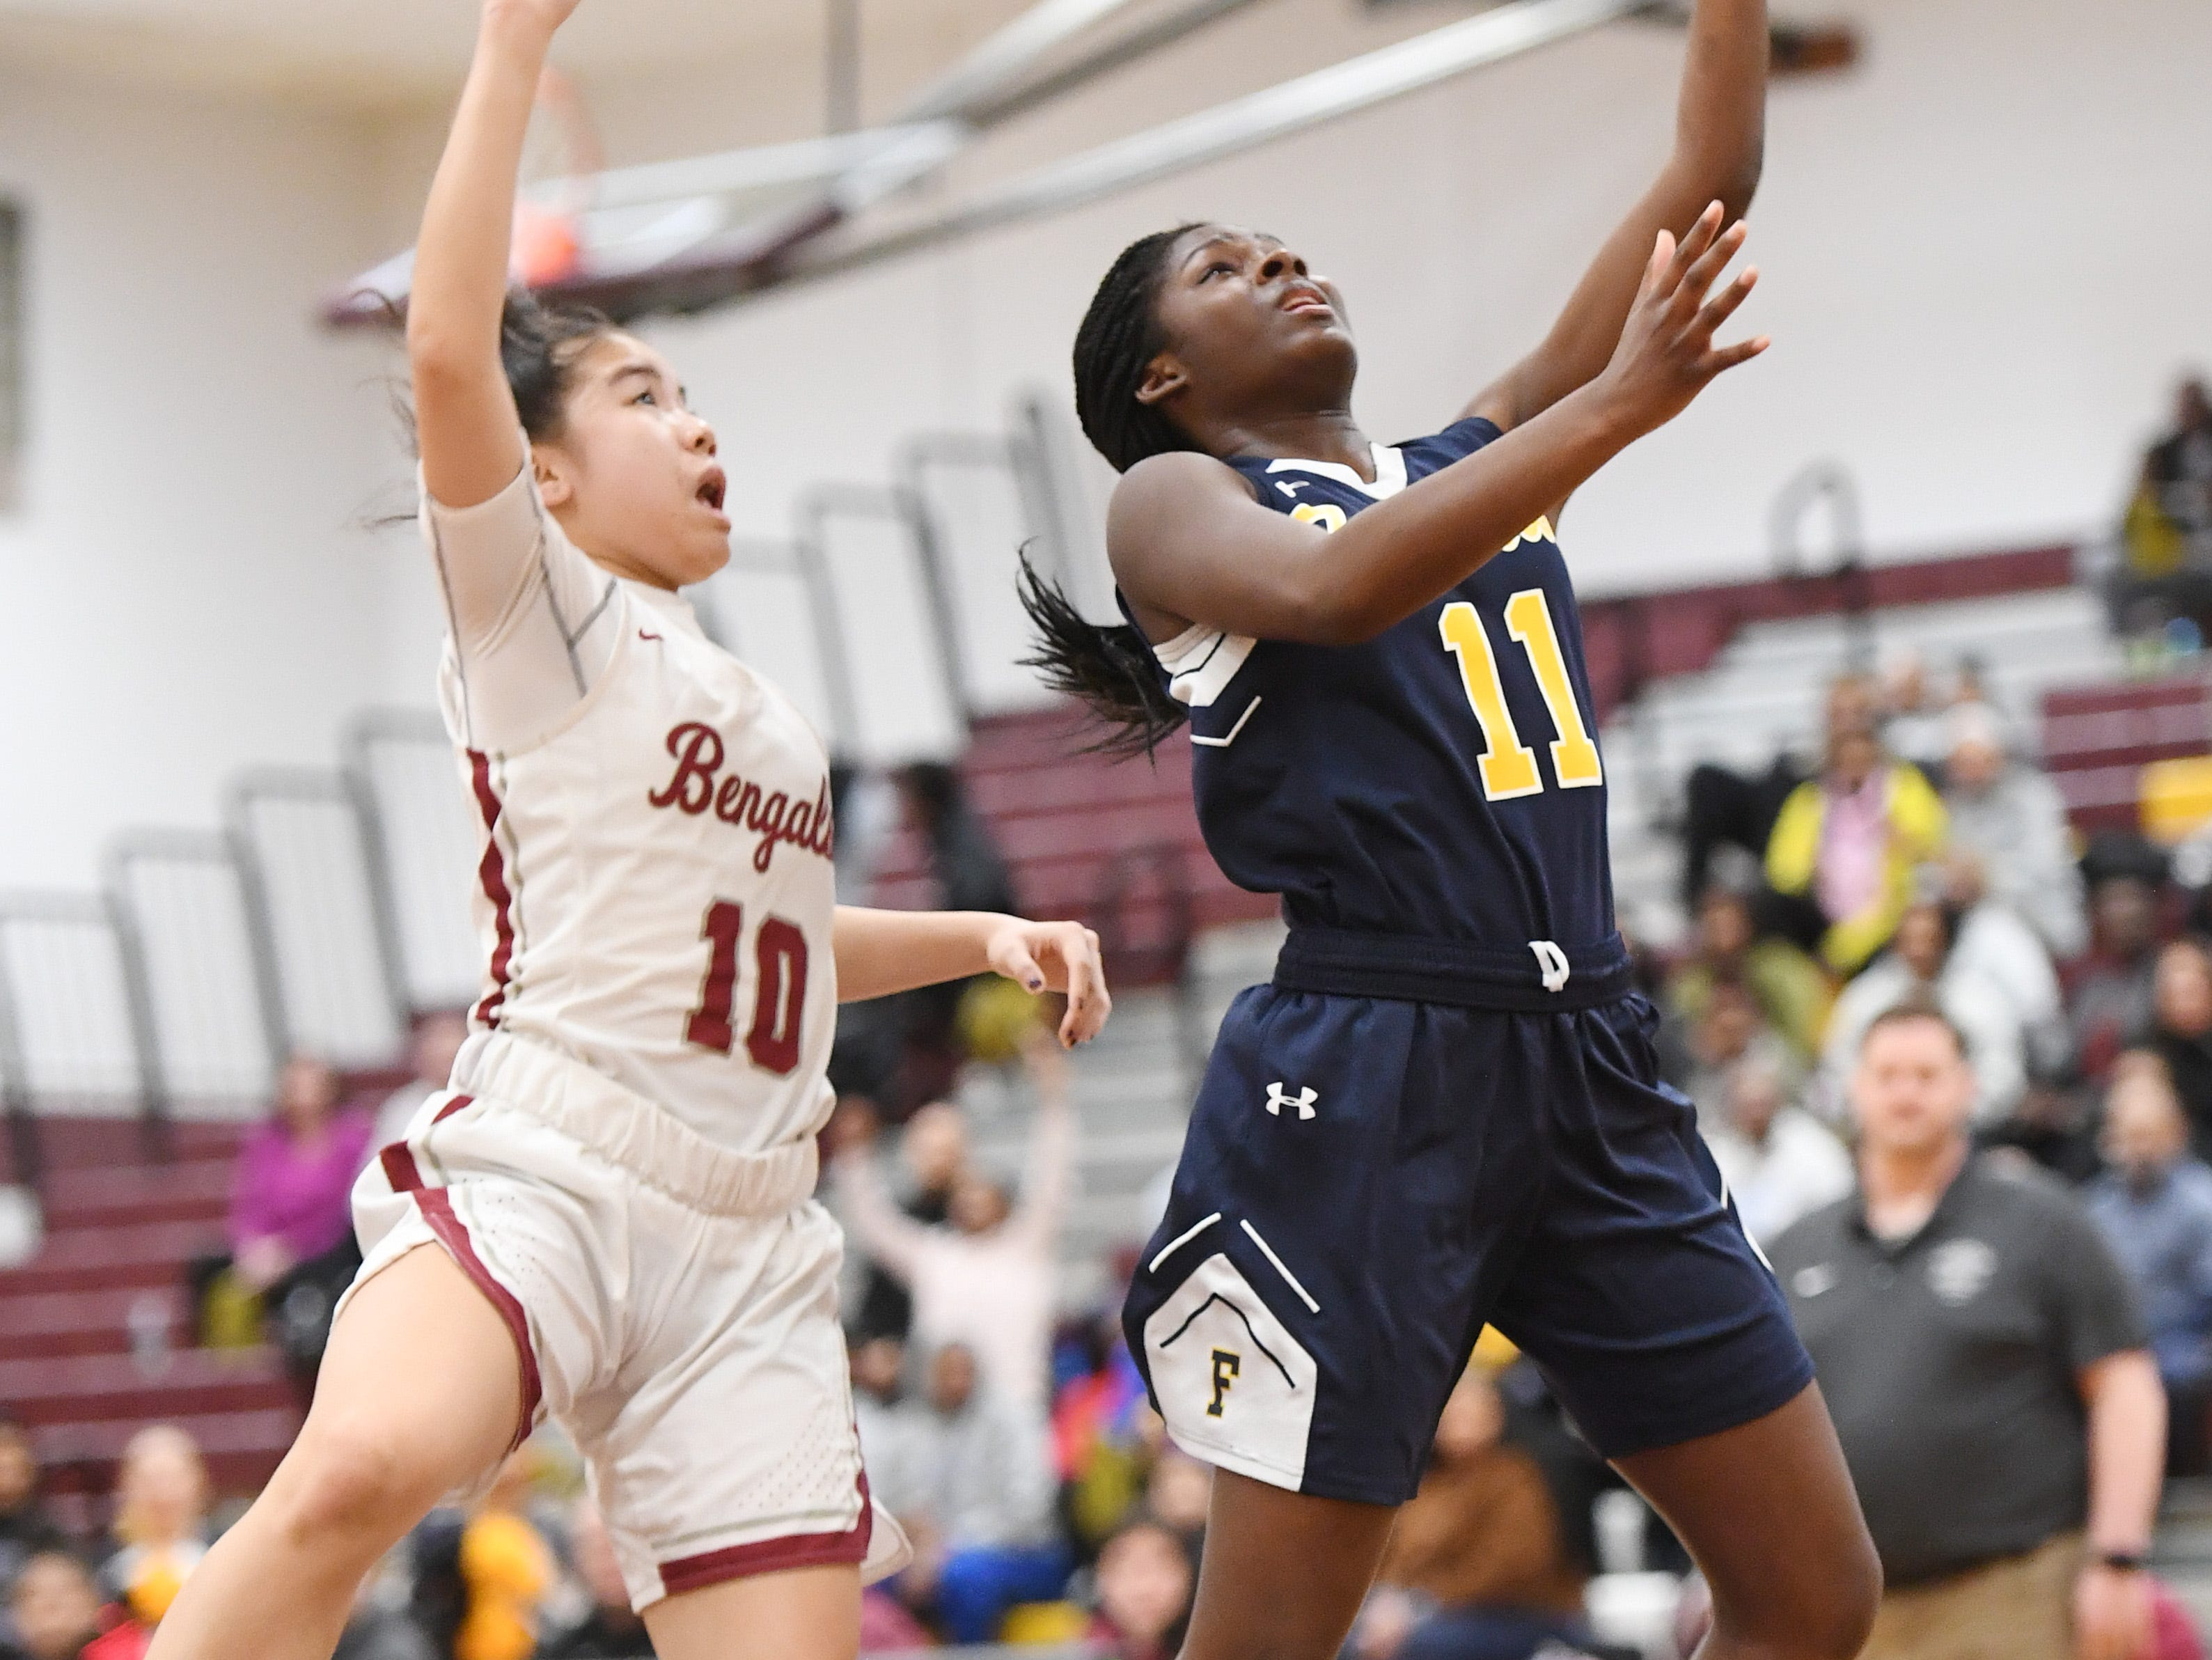 Franklin vs. Bloomfield in the girls basketball Group IV semifinal at Union High School on Thursday, March 7, 2019. F #11 Kennedy Schneck drives to the basket as B #10 Samantha Columna defends.